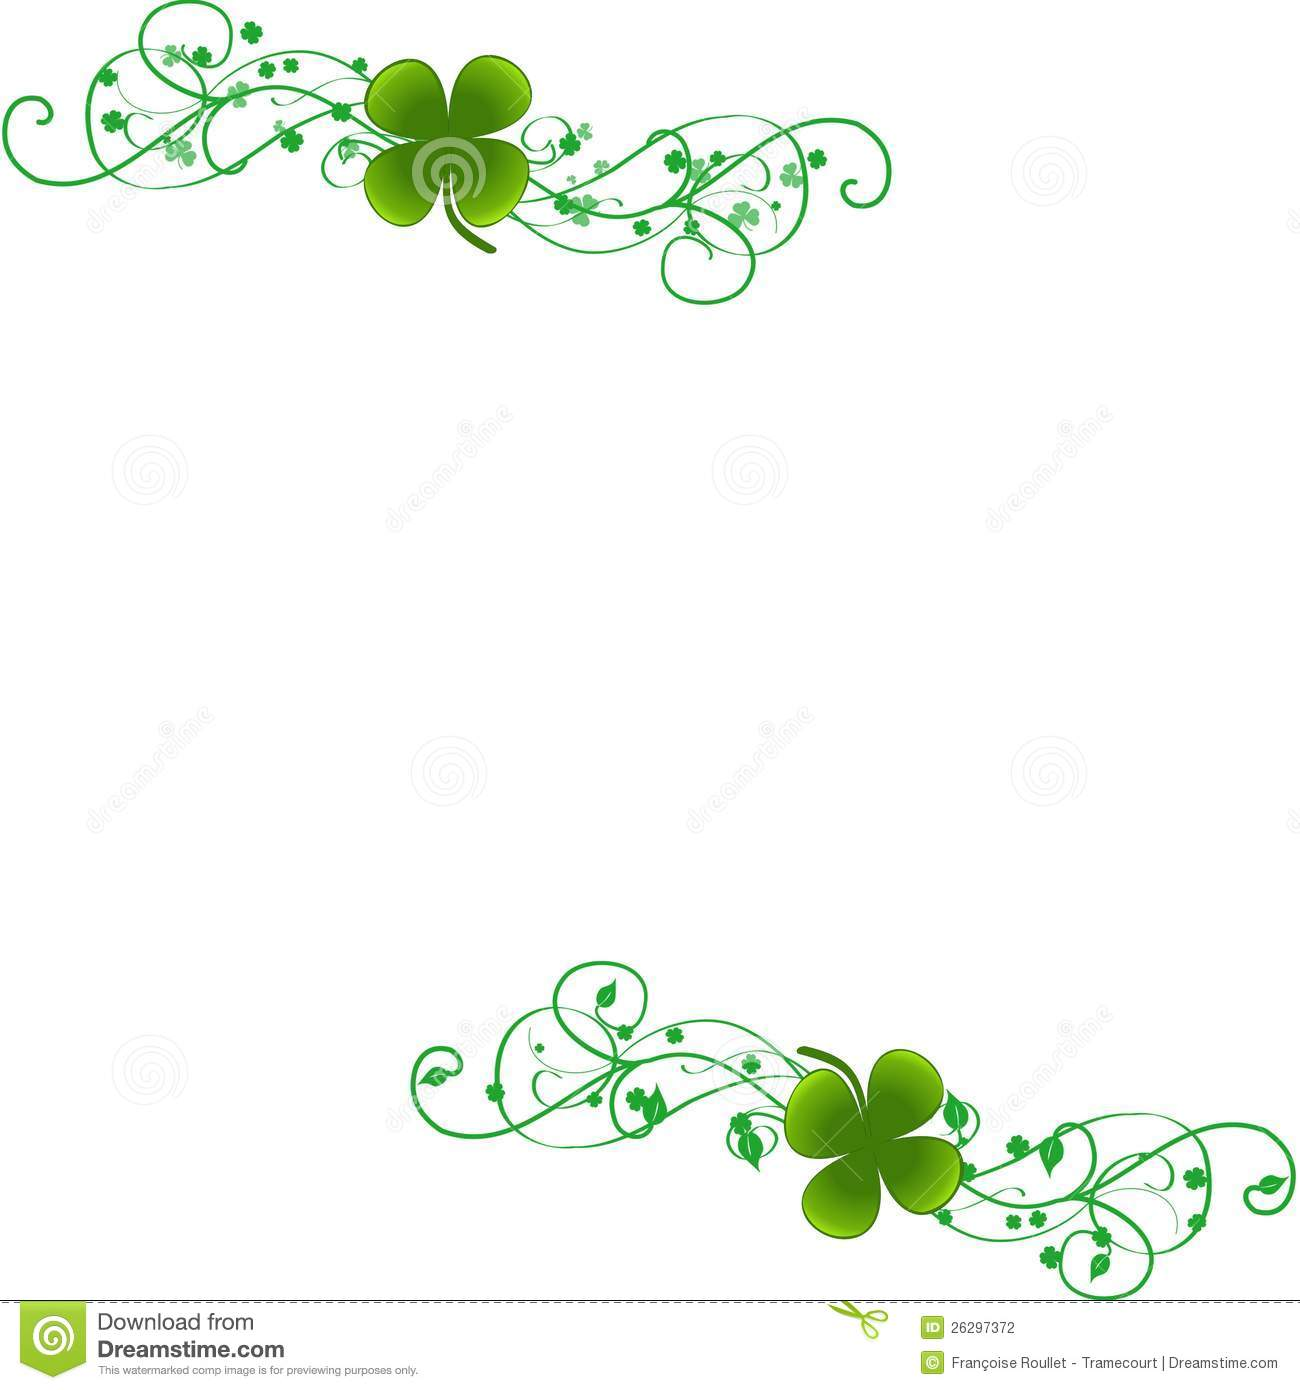 White Background With Four Leaf Clovers On Big Green Decorative